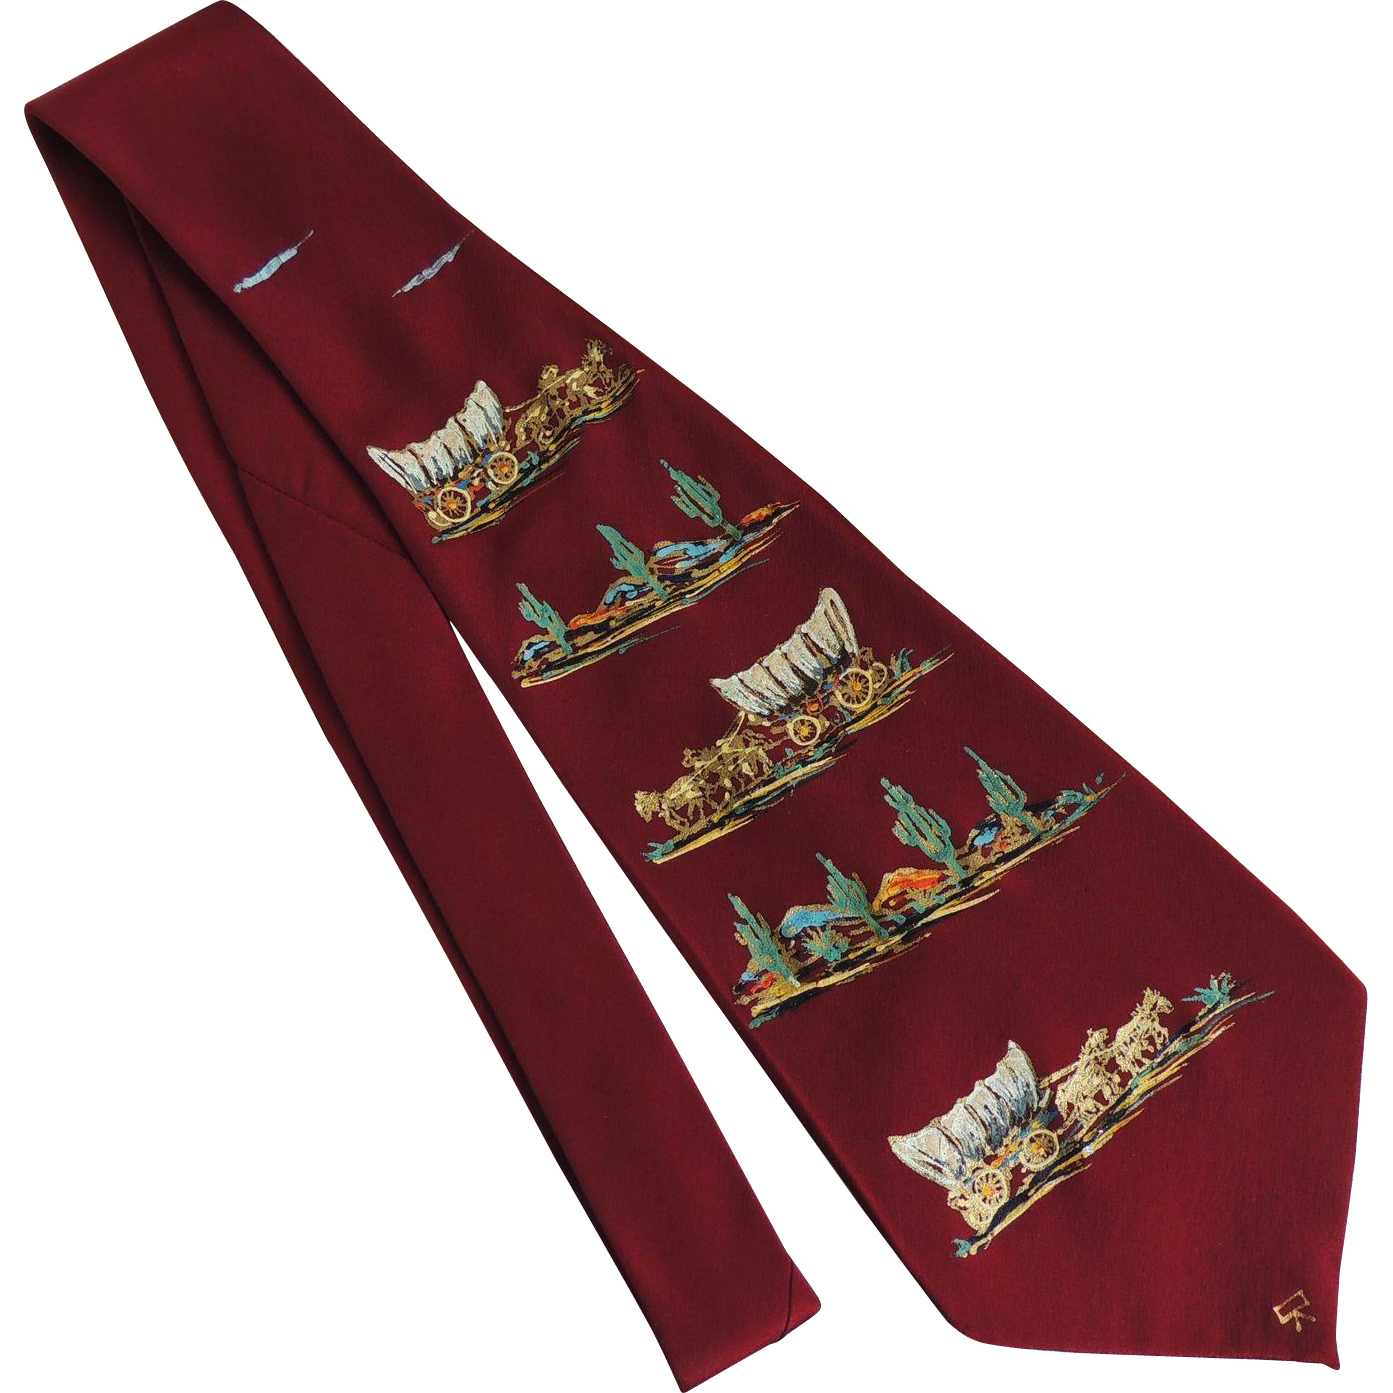 Vintage Tie Cowboy Covered Wagon Themed Hand Painted California c1950's